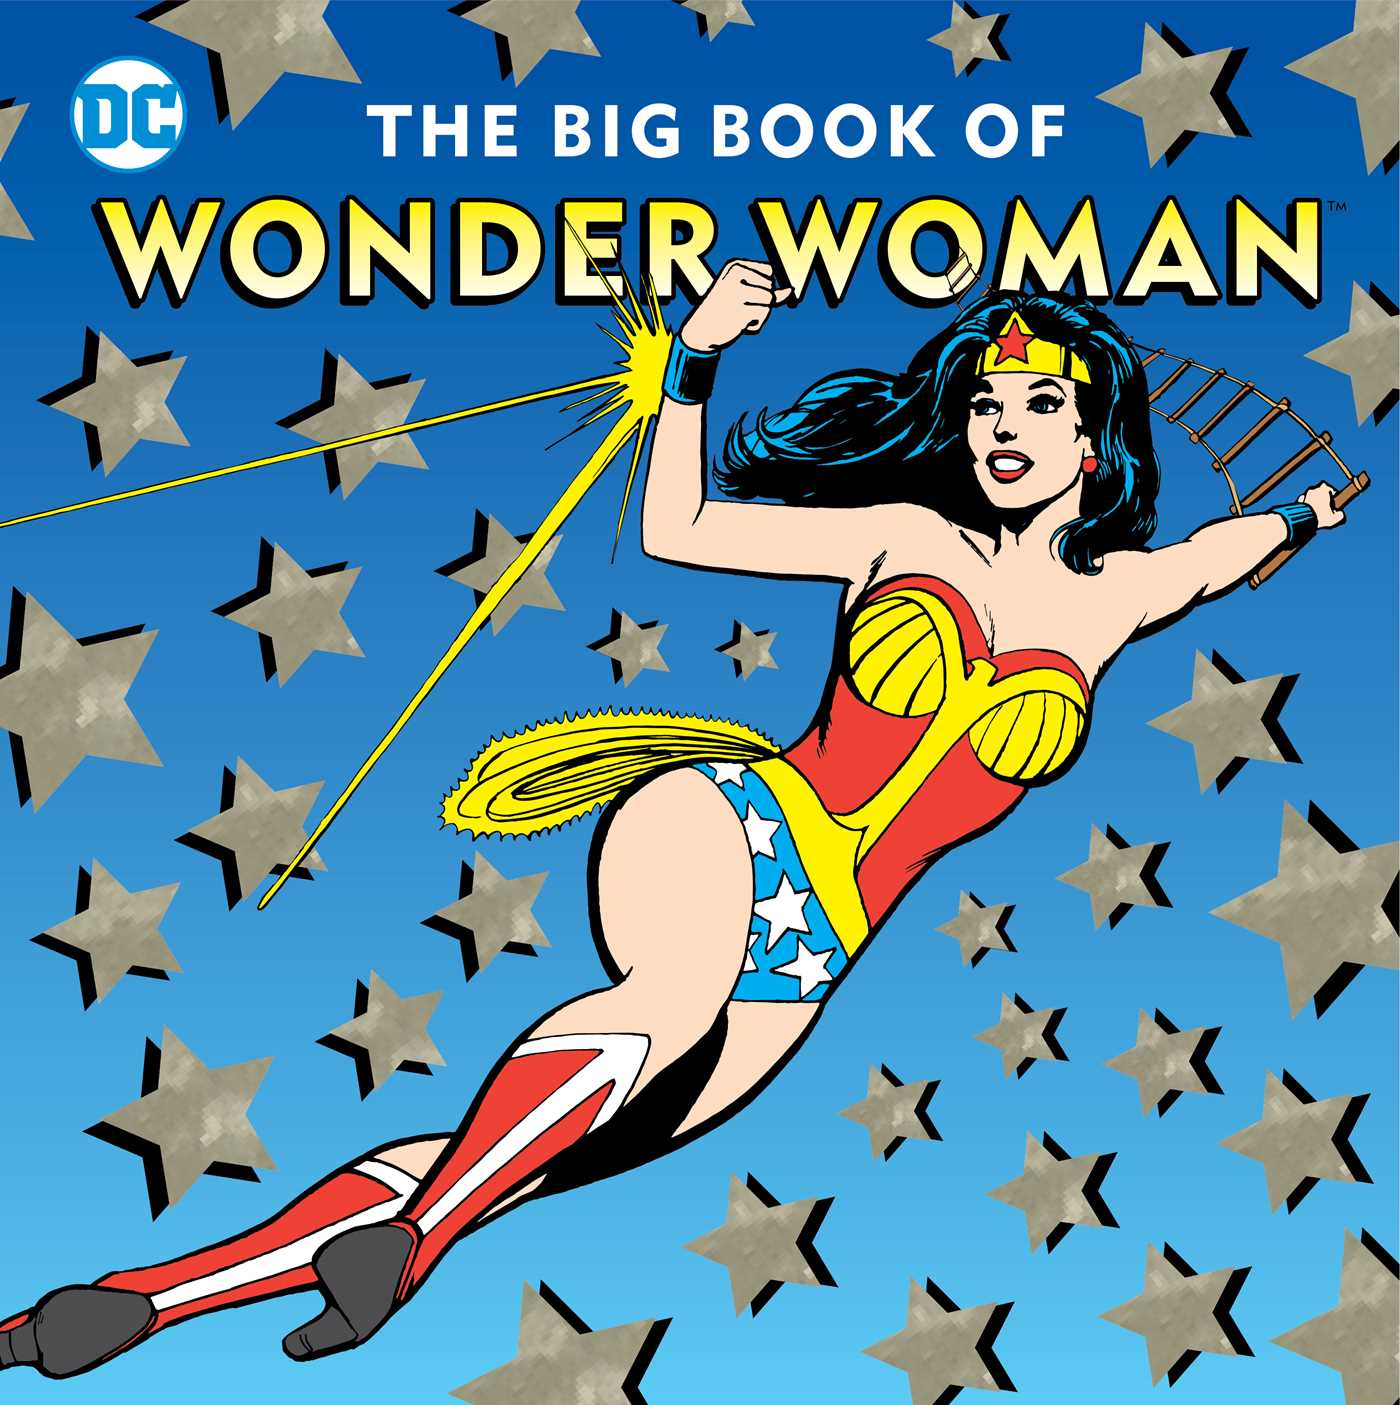 The Big Book of Wonder Woman (Hardcover)